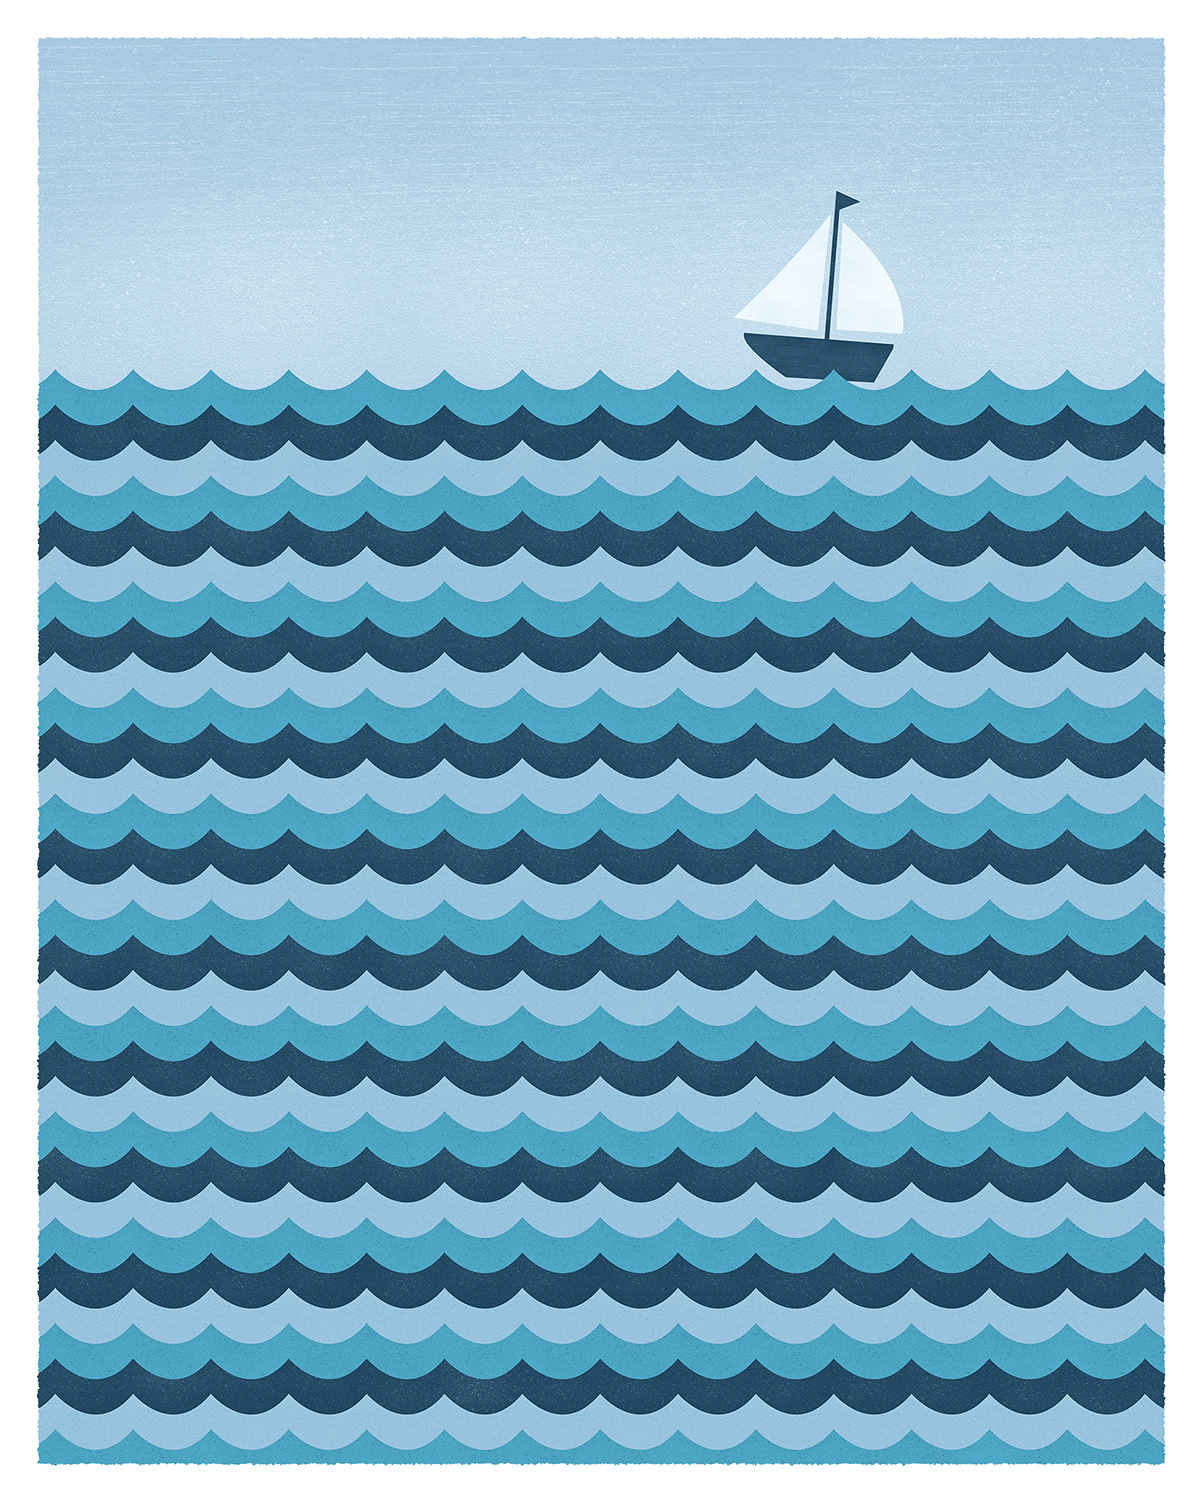 Ocean Waves Illustration